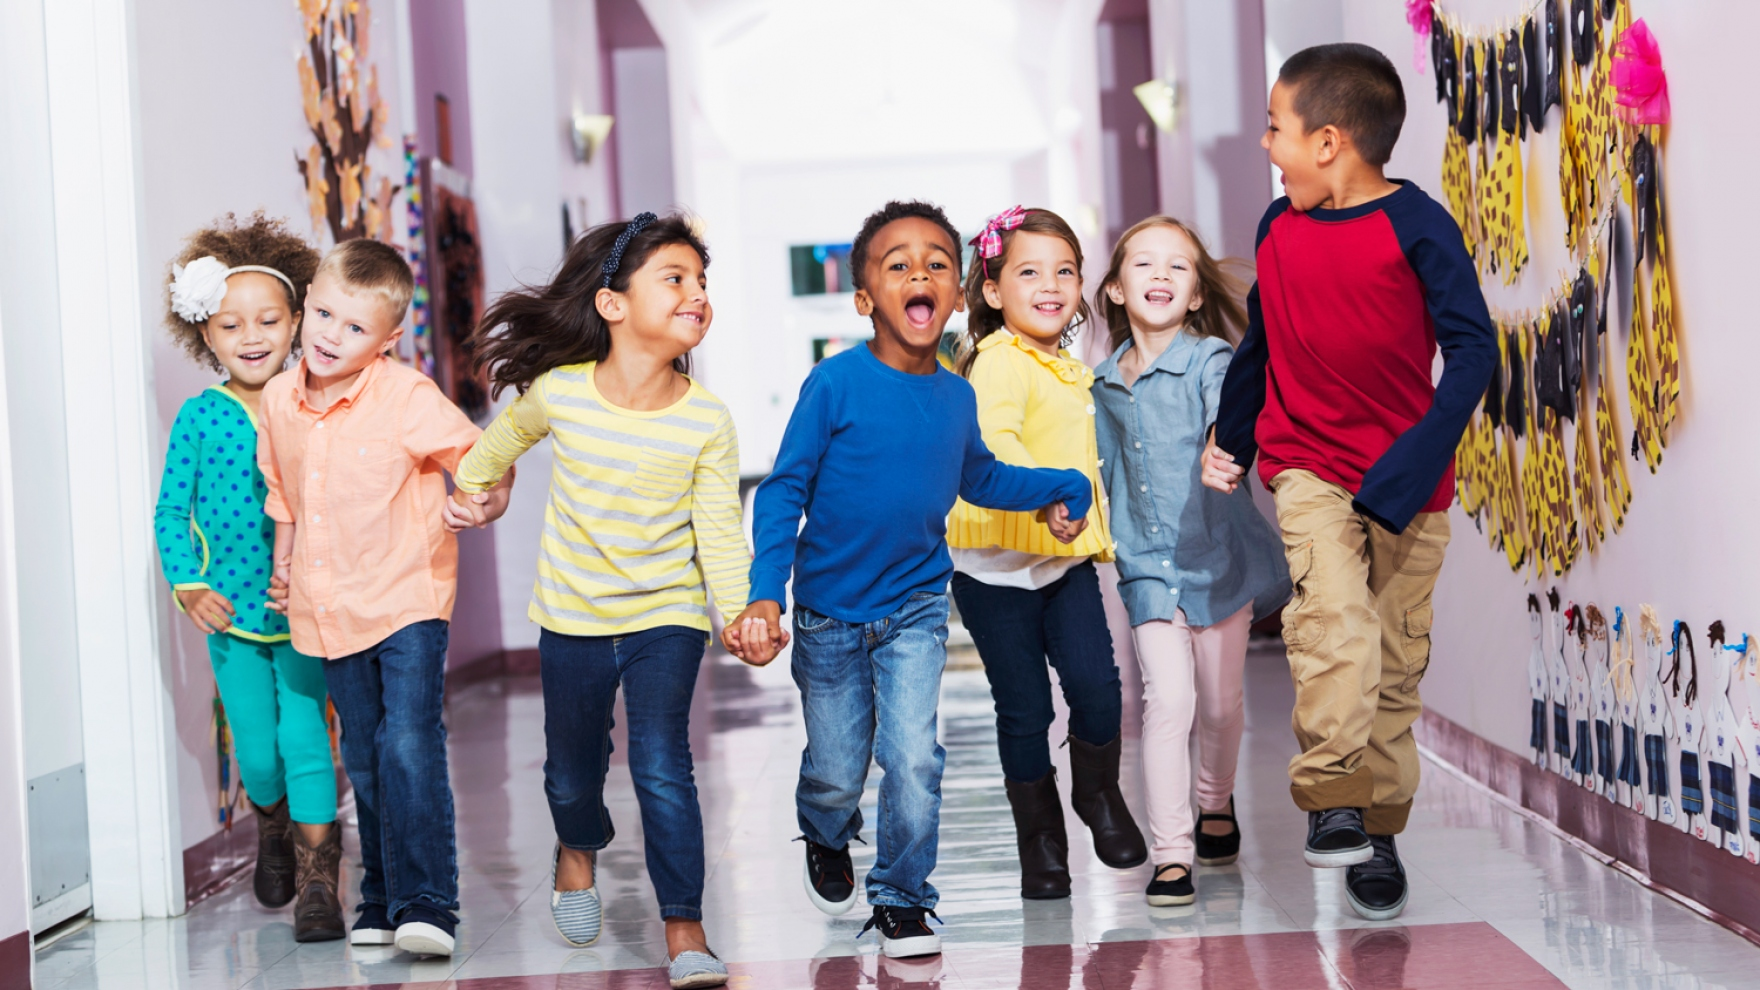 Classroom Friendships May Offset Effects Of Punitive